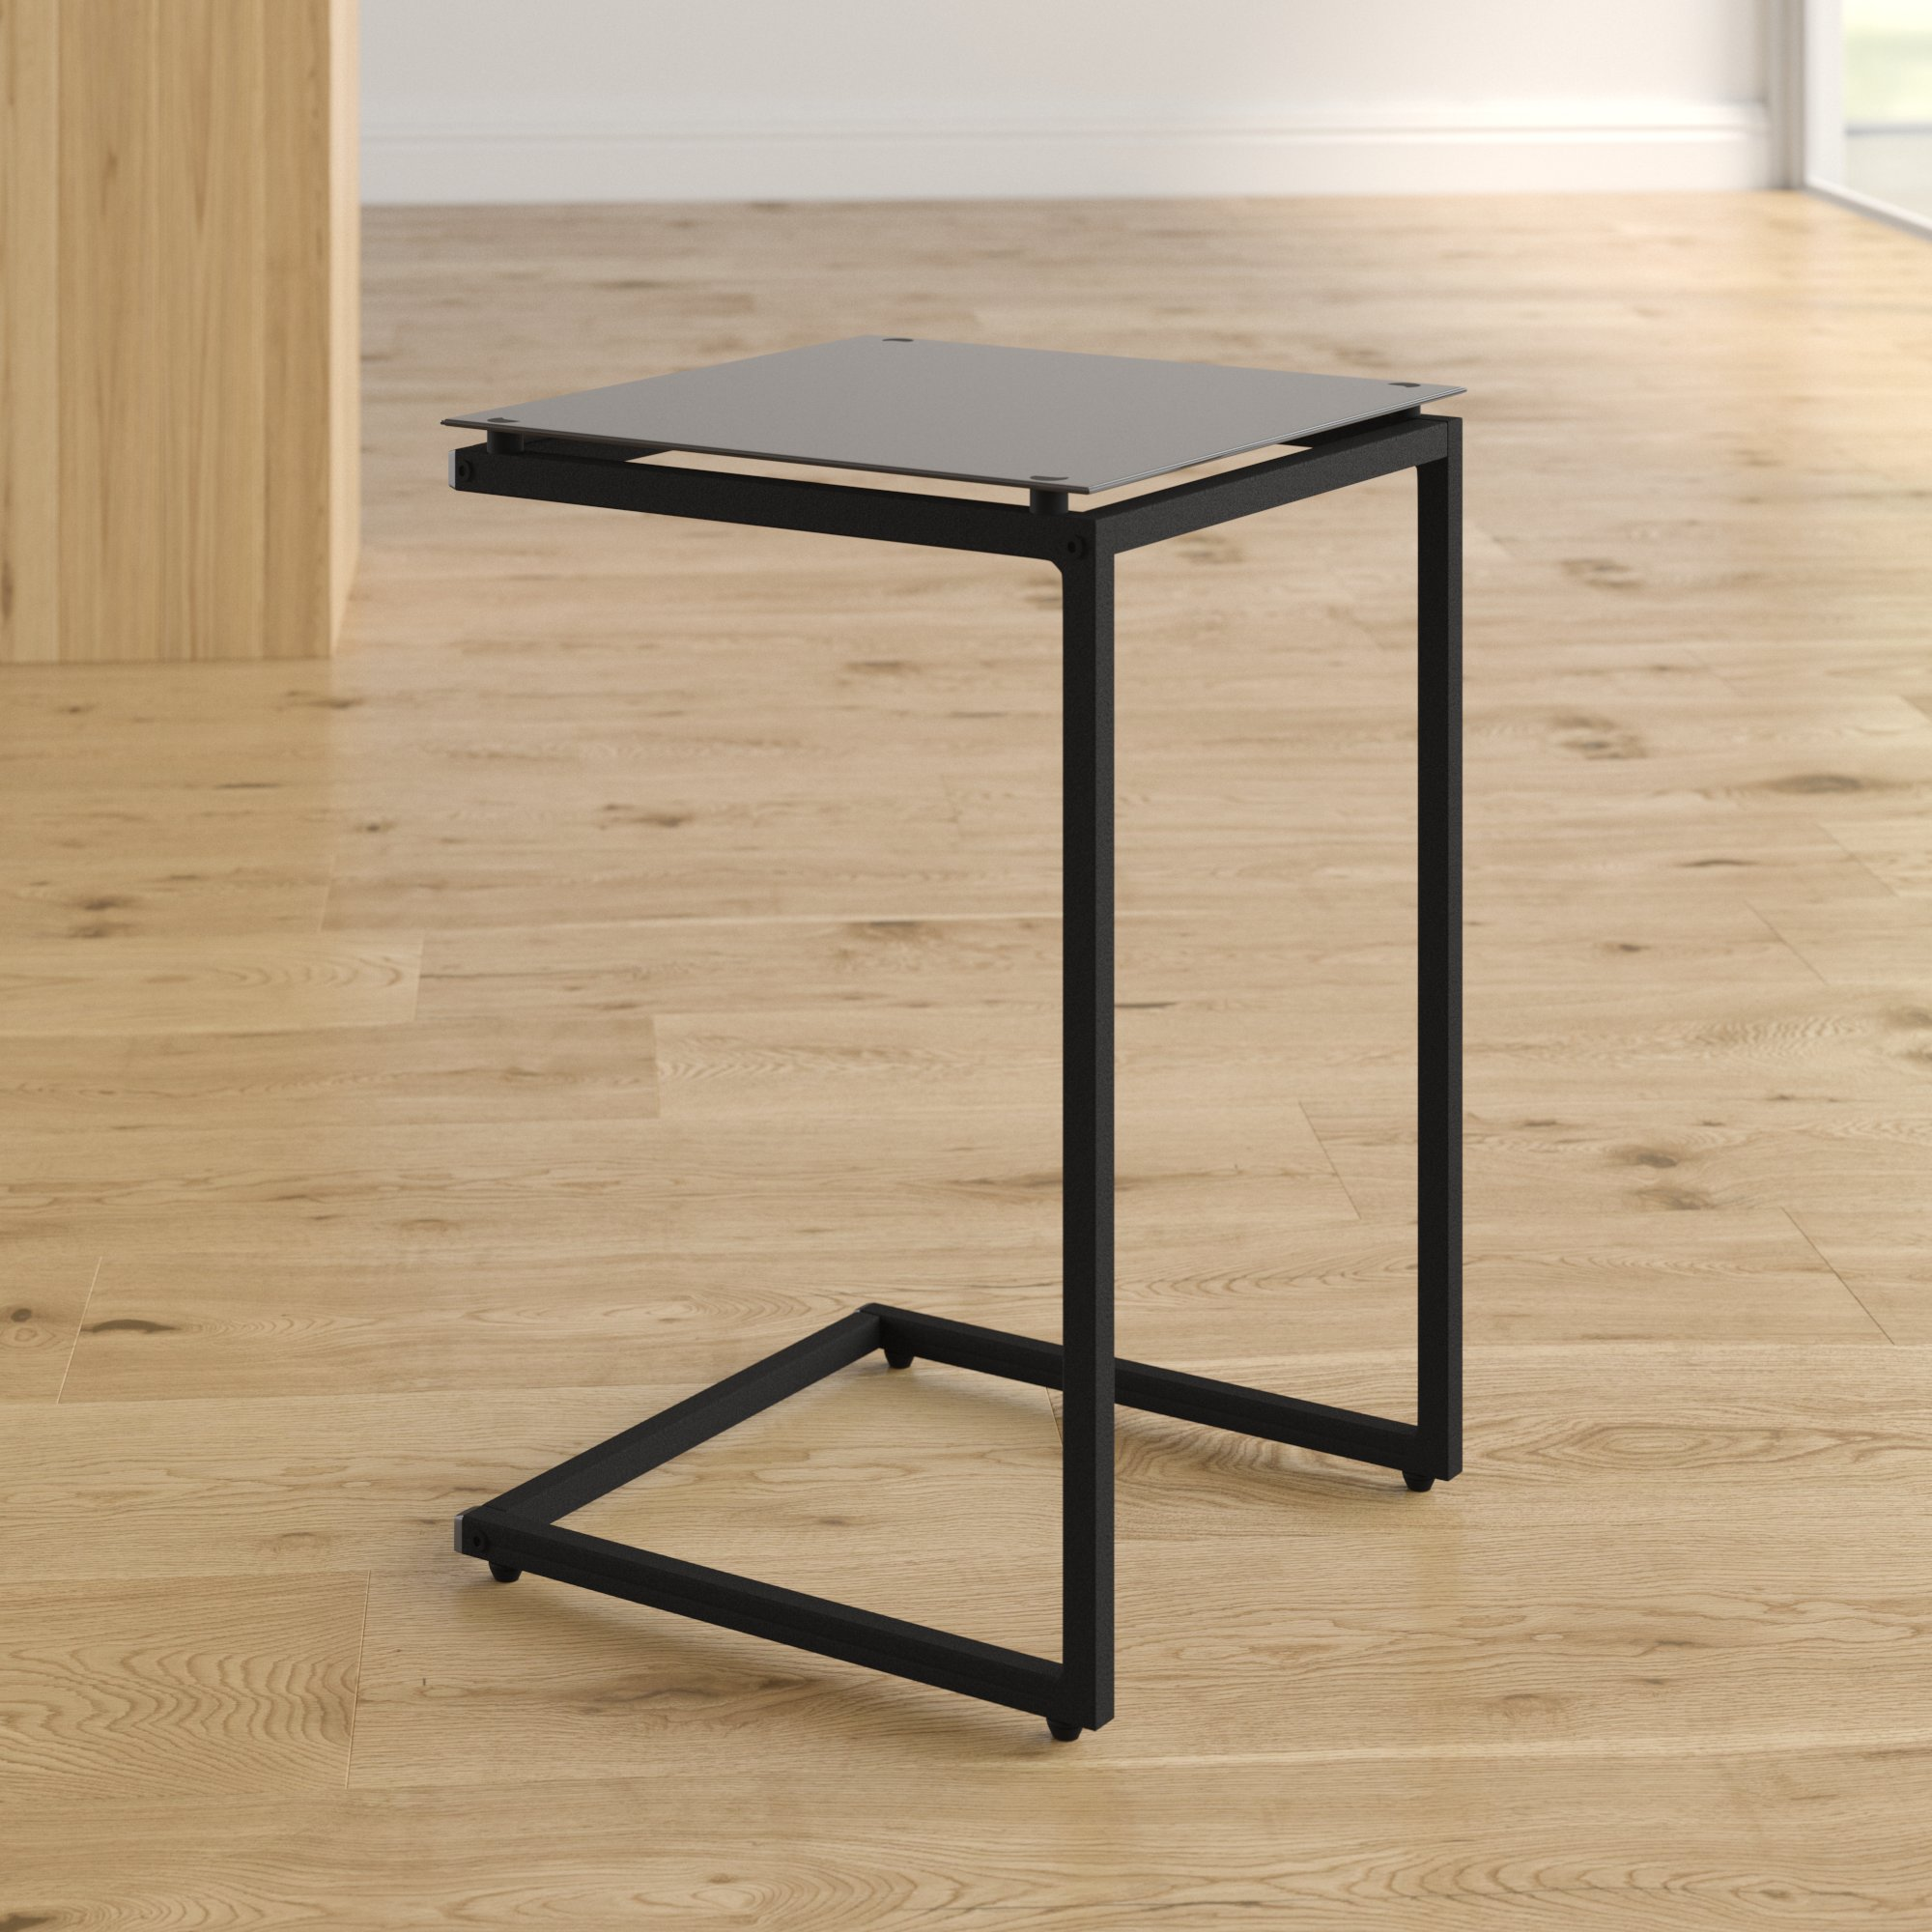 shaped side table bonetti end storage accent black room essentials and white lamp diy barndoor tro lamps mouse wired furniture toronto breakfast with stools home goods curtains